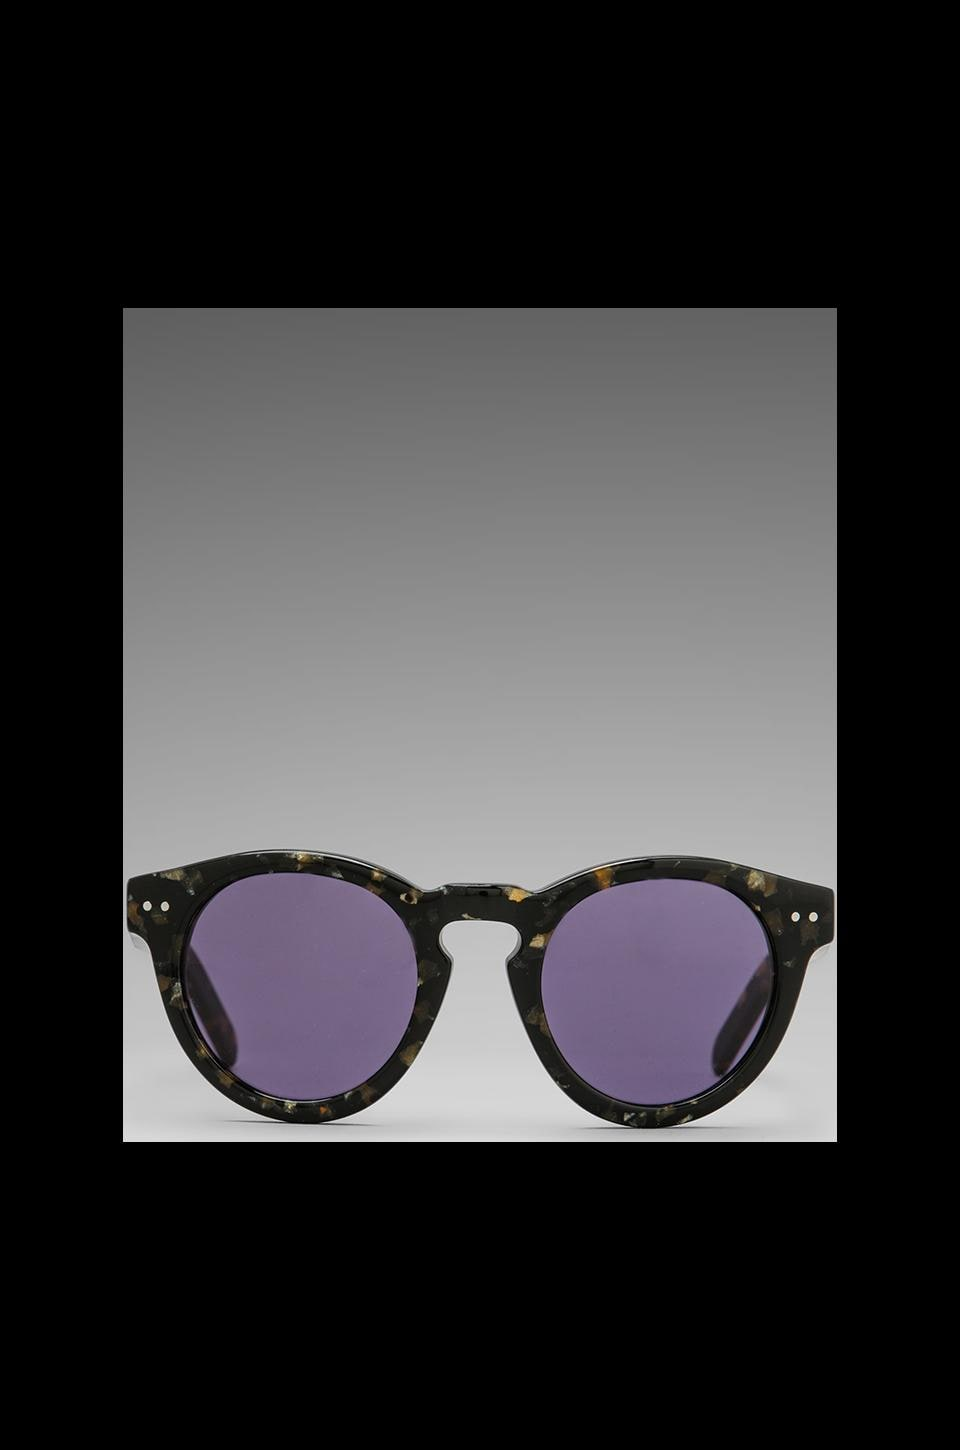 House of Harlow 1960 House of Harlow Carmen Sunglasses in Black/Gold